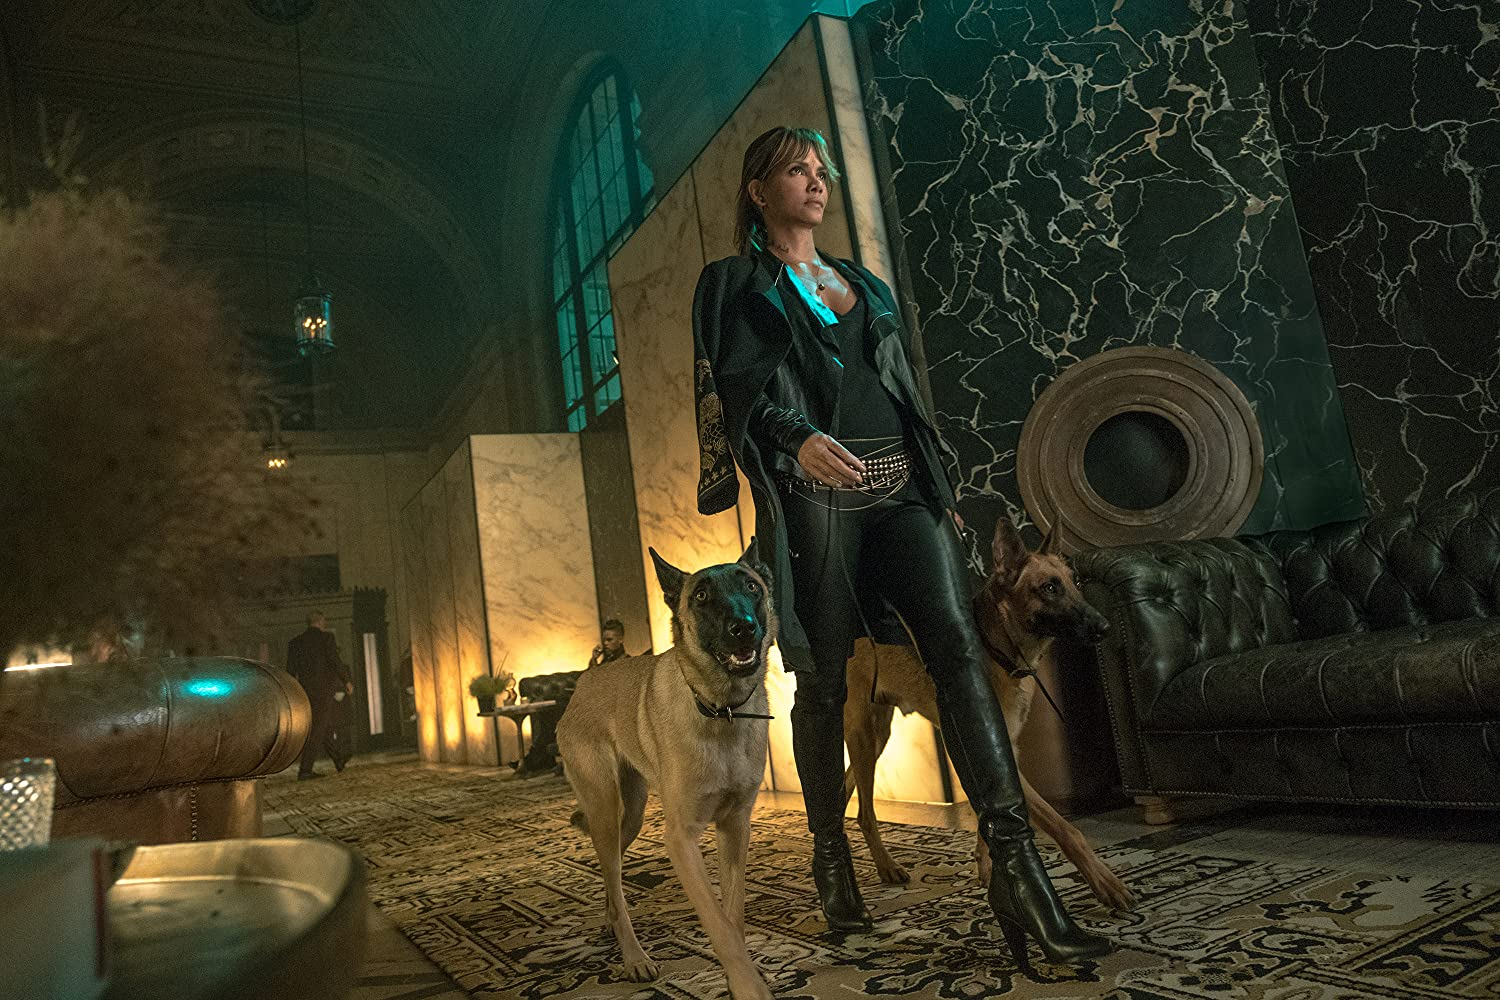 Halle Berry in John Wick: Chapter 3 - Parabellum (2019)